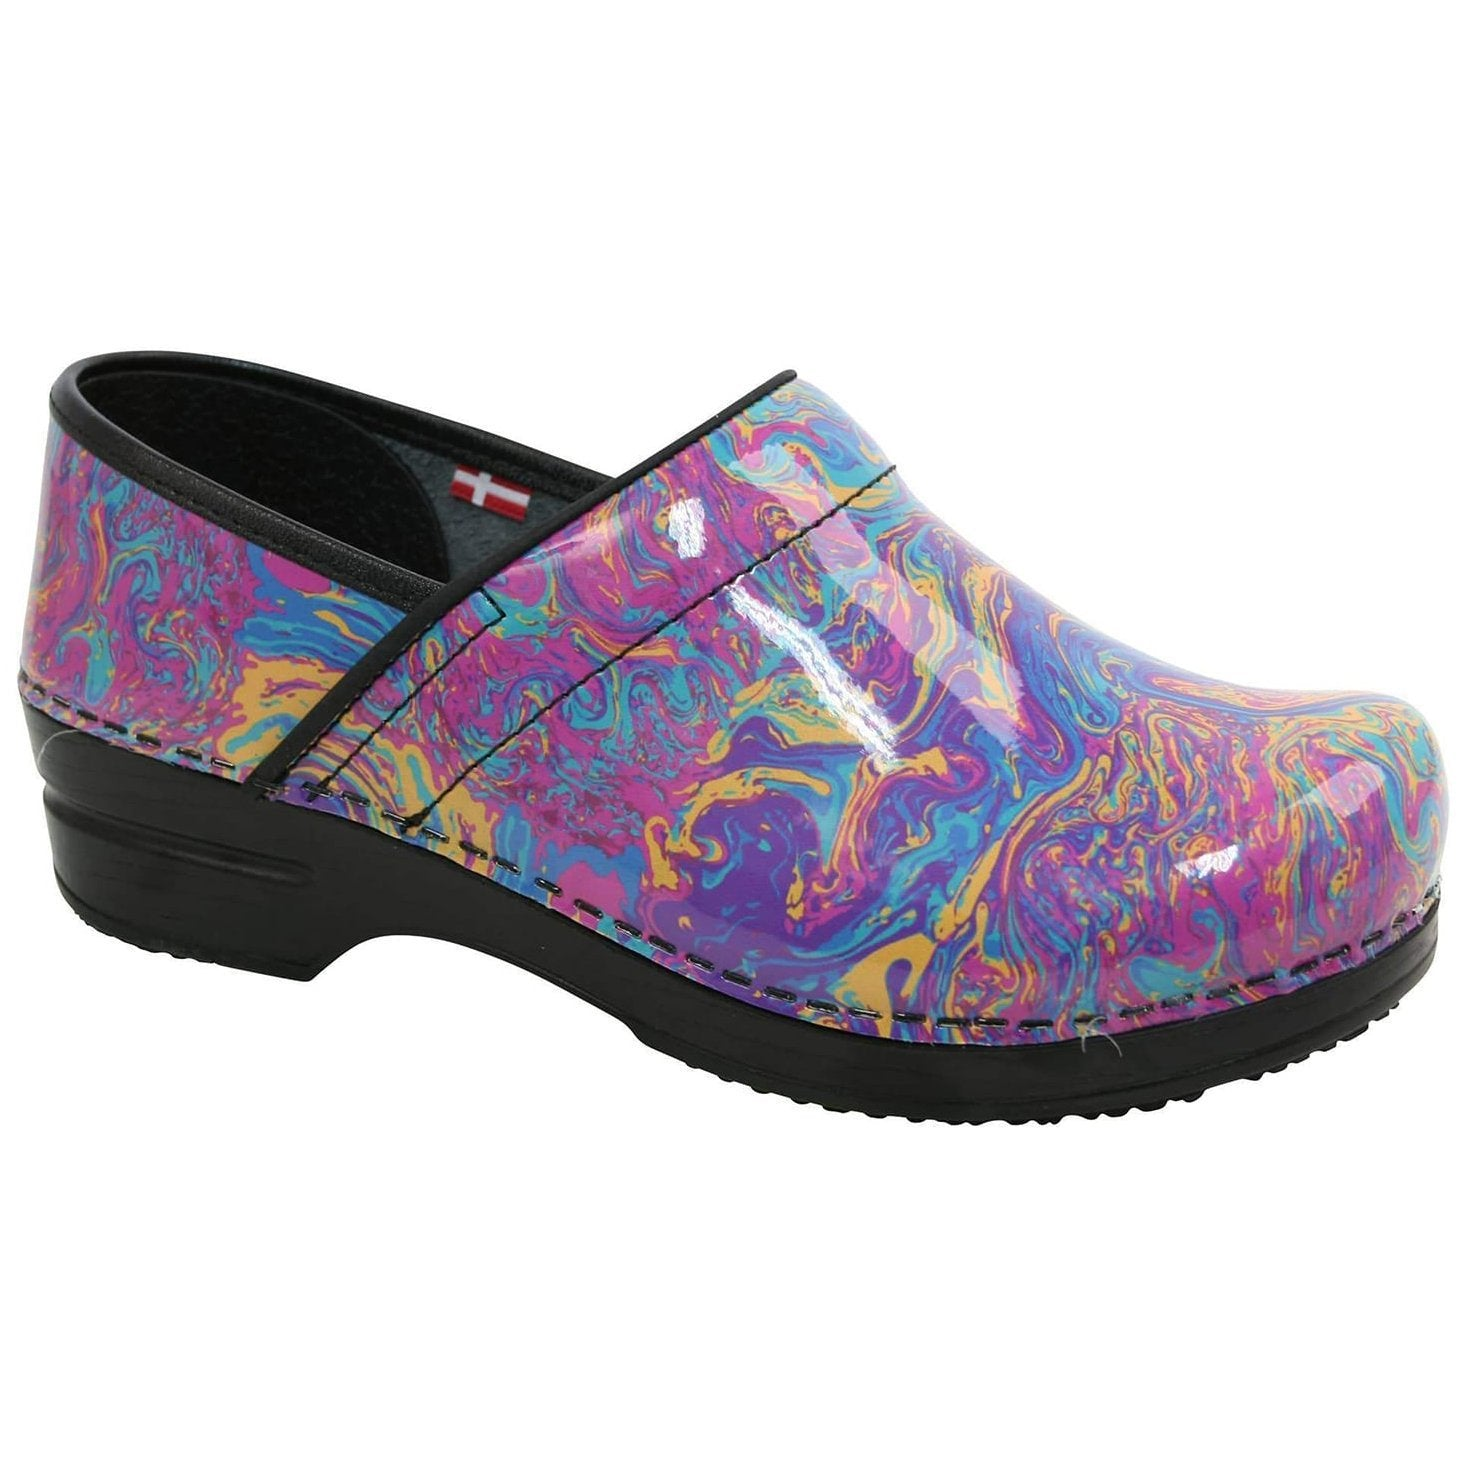 Sanita Hydra Women's Closed Back Clog